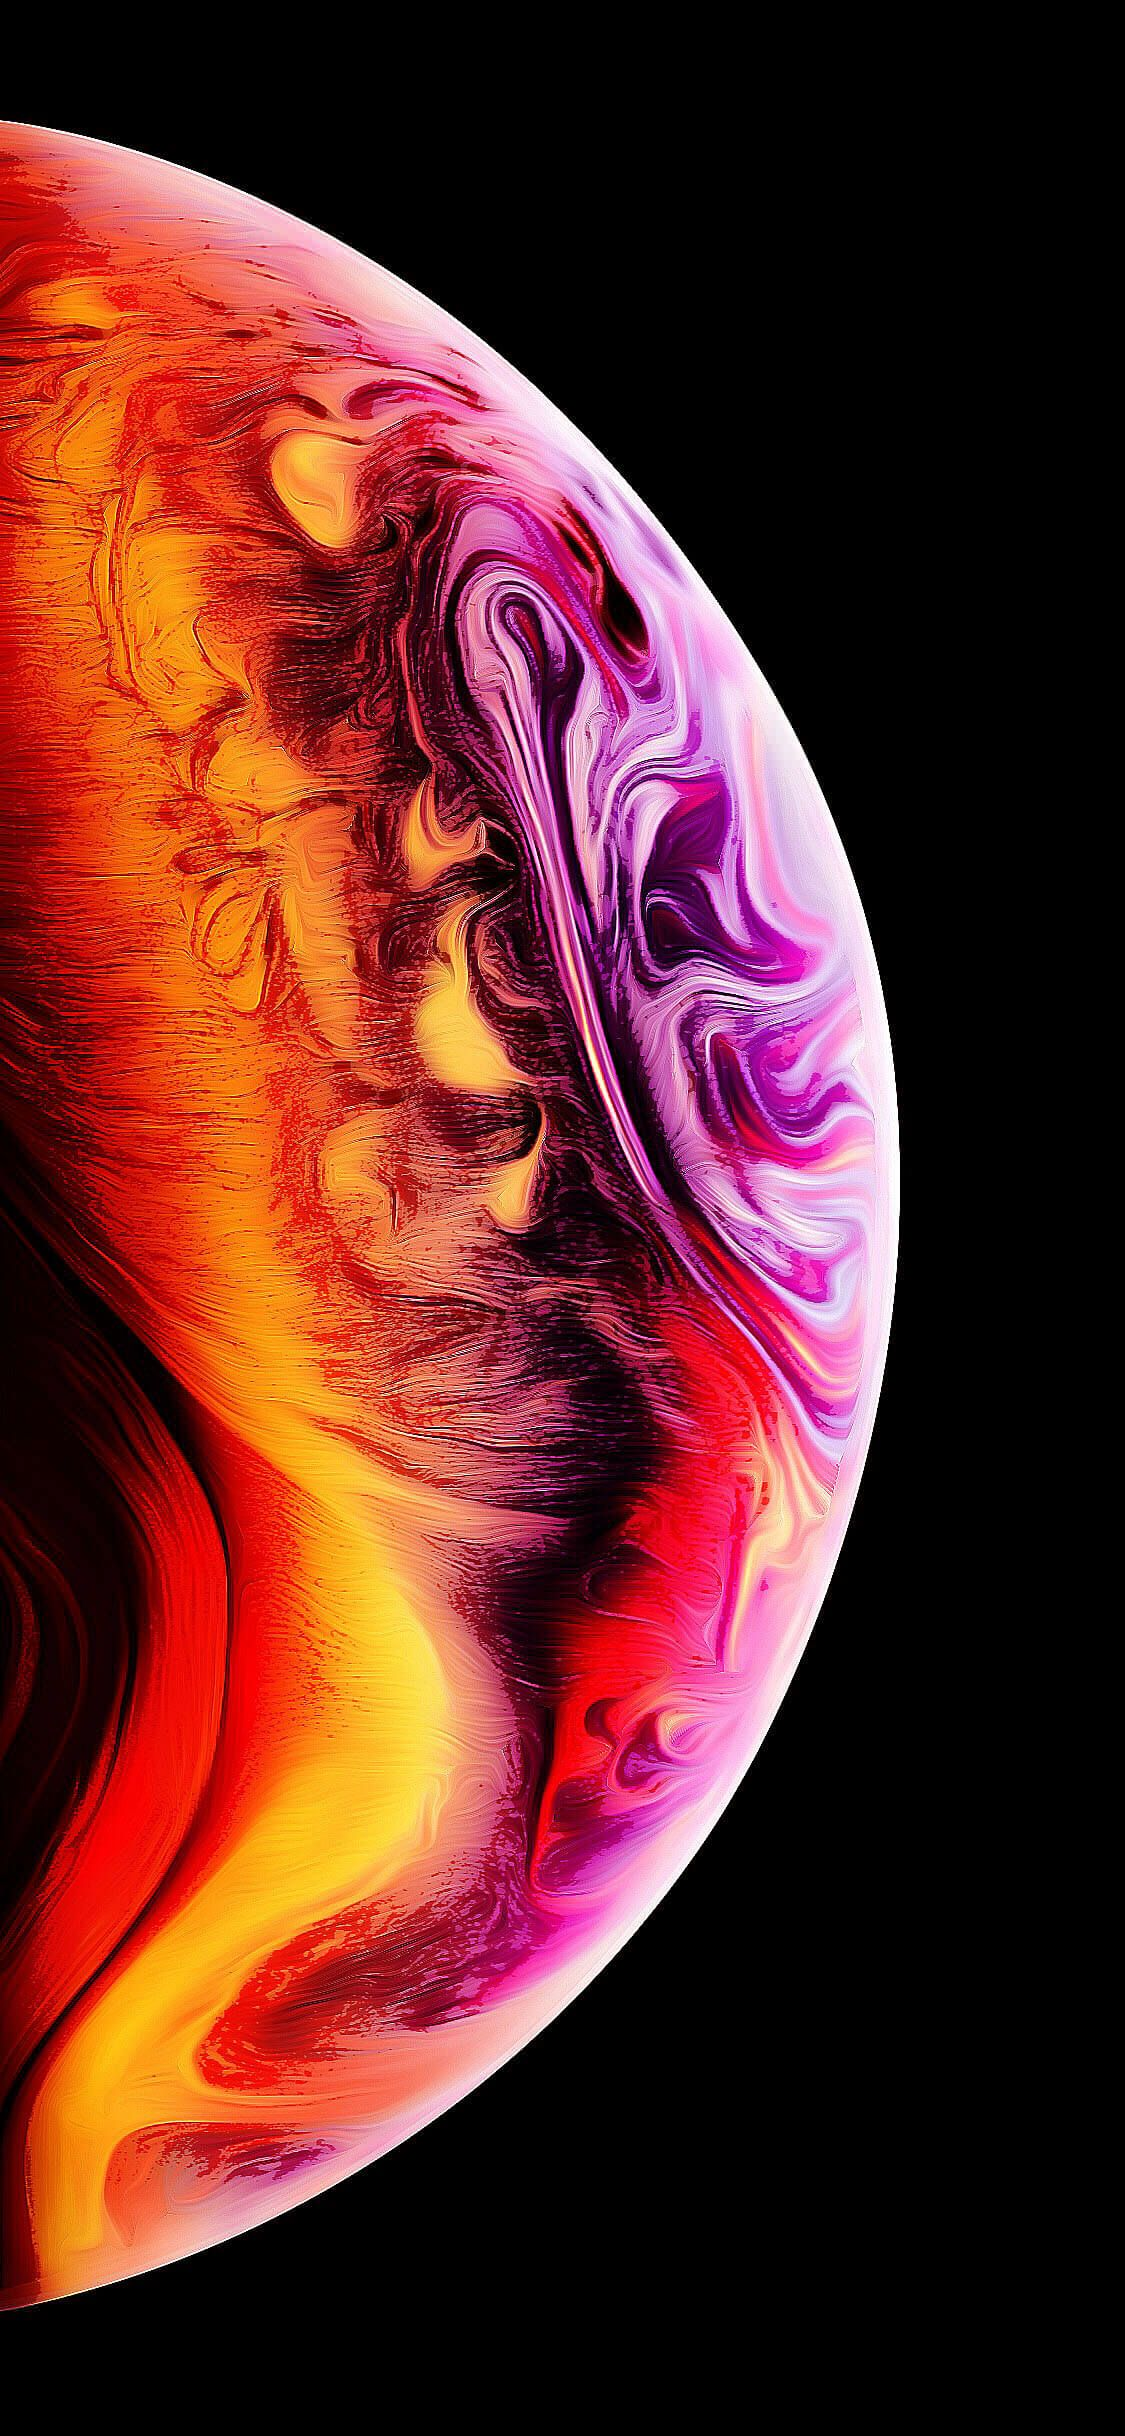 1125 × 2436 original HD iphone xs Apple wallpaper iphone